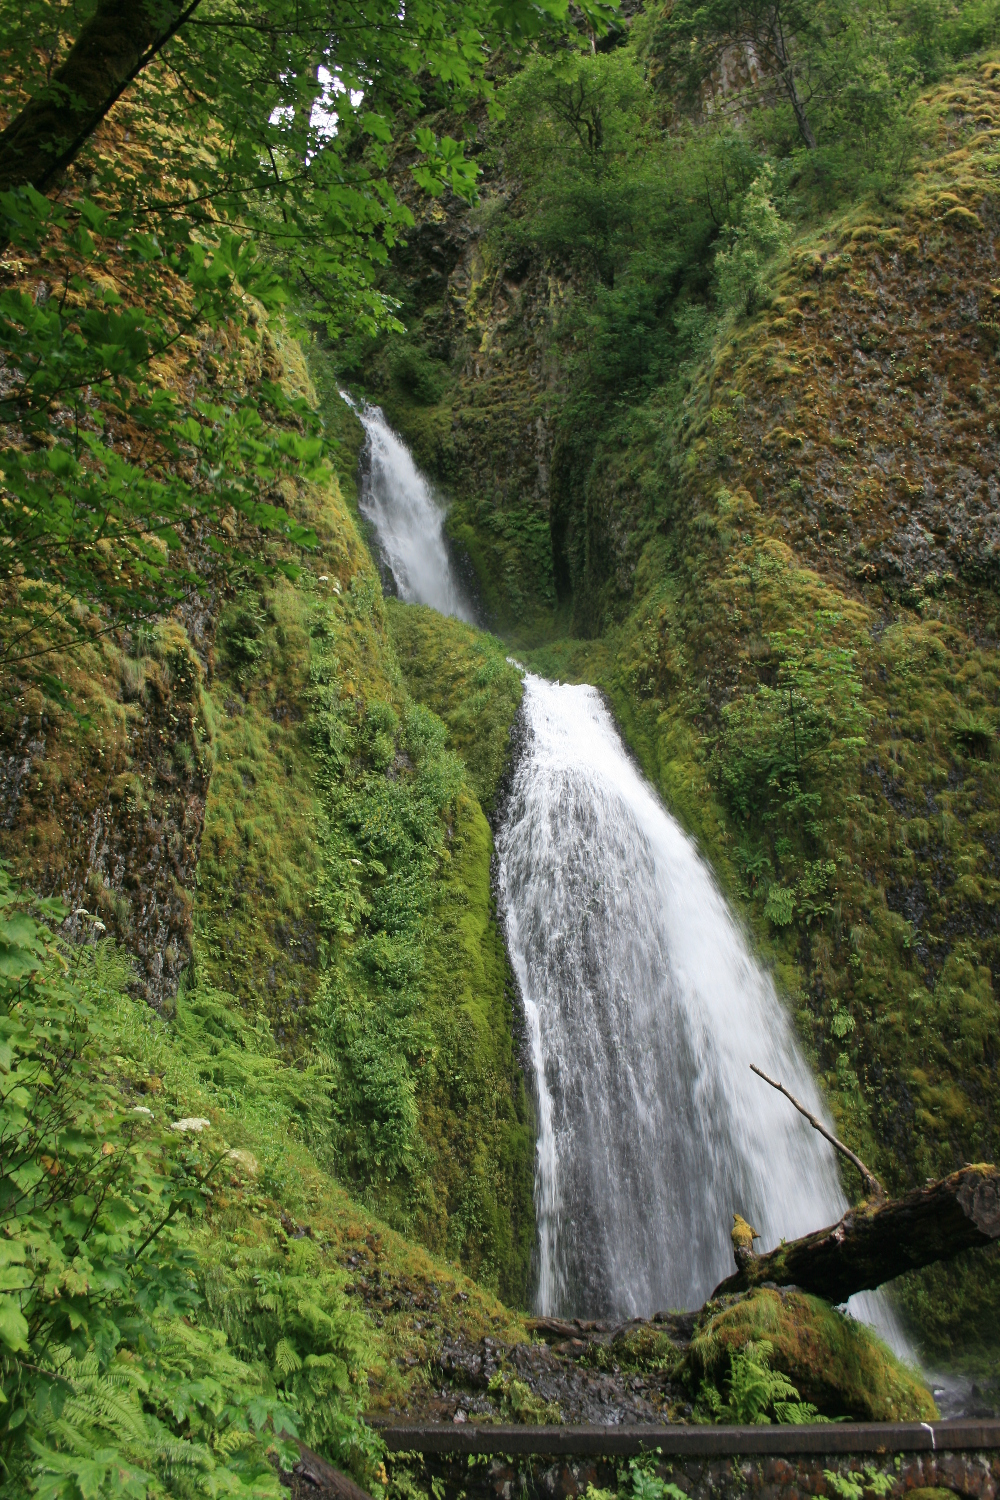 Wahkeena Falls. The crowds start to pick up again here, as you no doubt know!